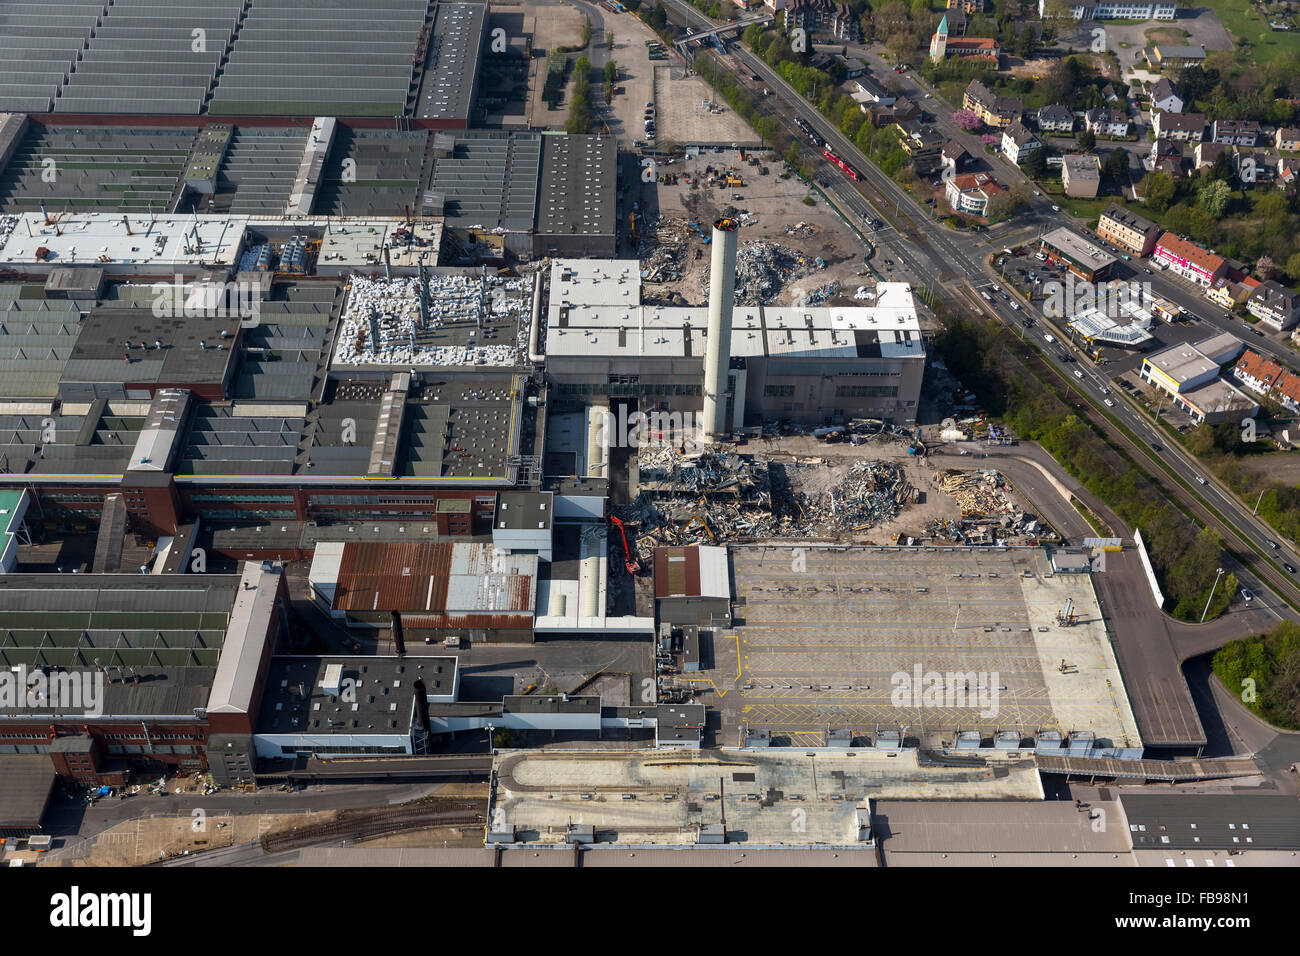 Aerial view, the demolition of the Opel plant in Bochum 1 has begun, Ruhr area Bochum, Germany, Europe, Aerial view, - Stock Image